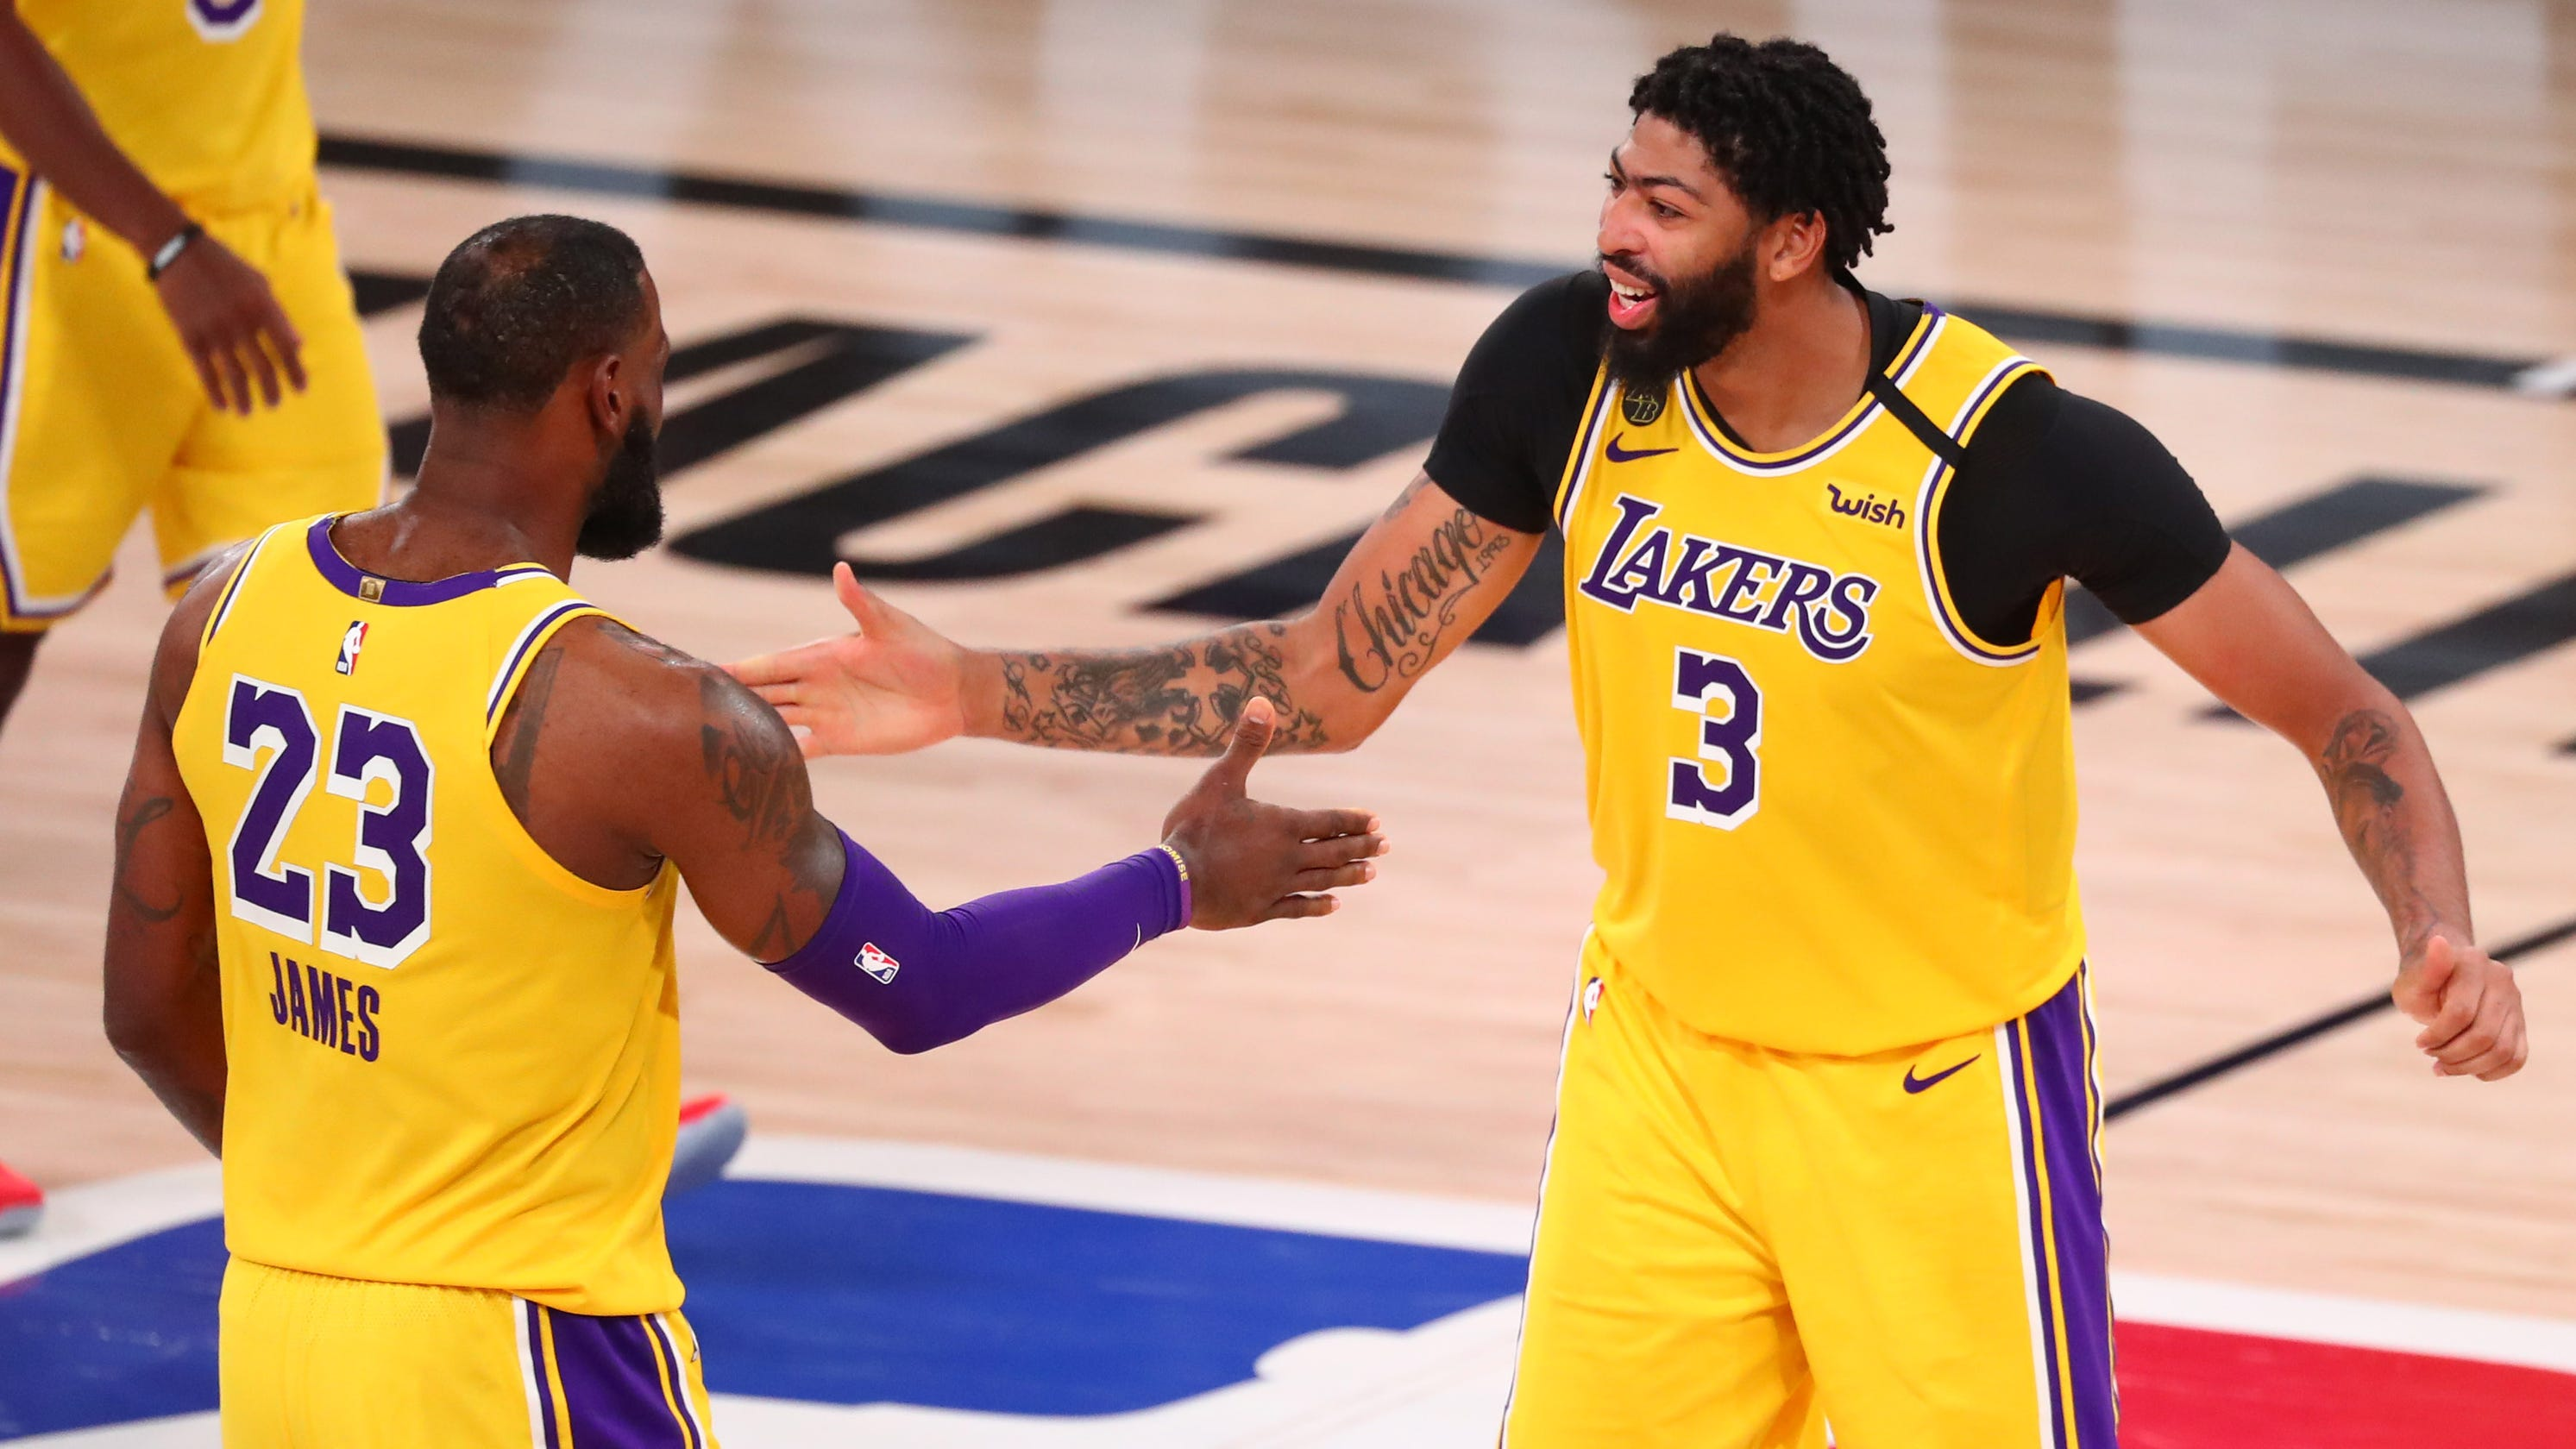 Lakers bully Rockets in Game 4 to take commanding 3-1 series lead